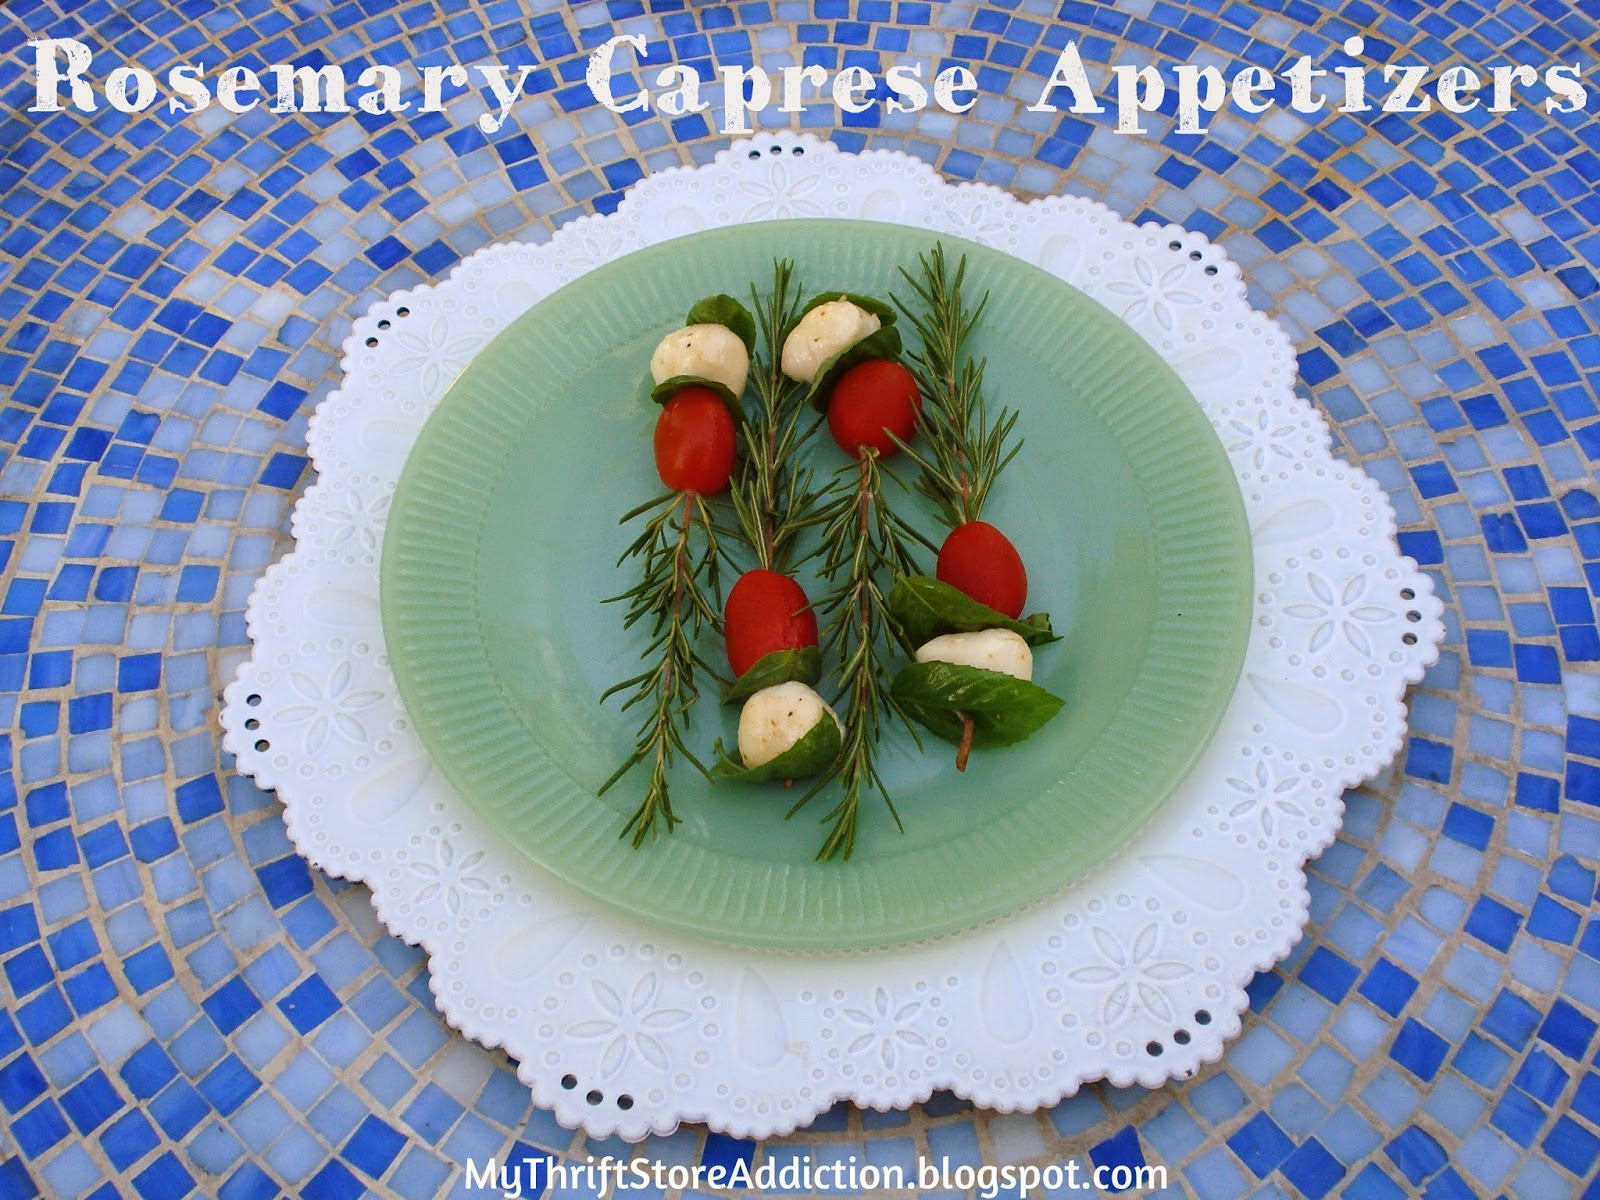 Rosemary caprese appetizers